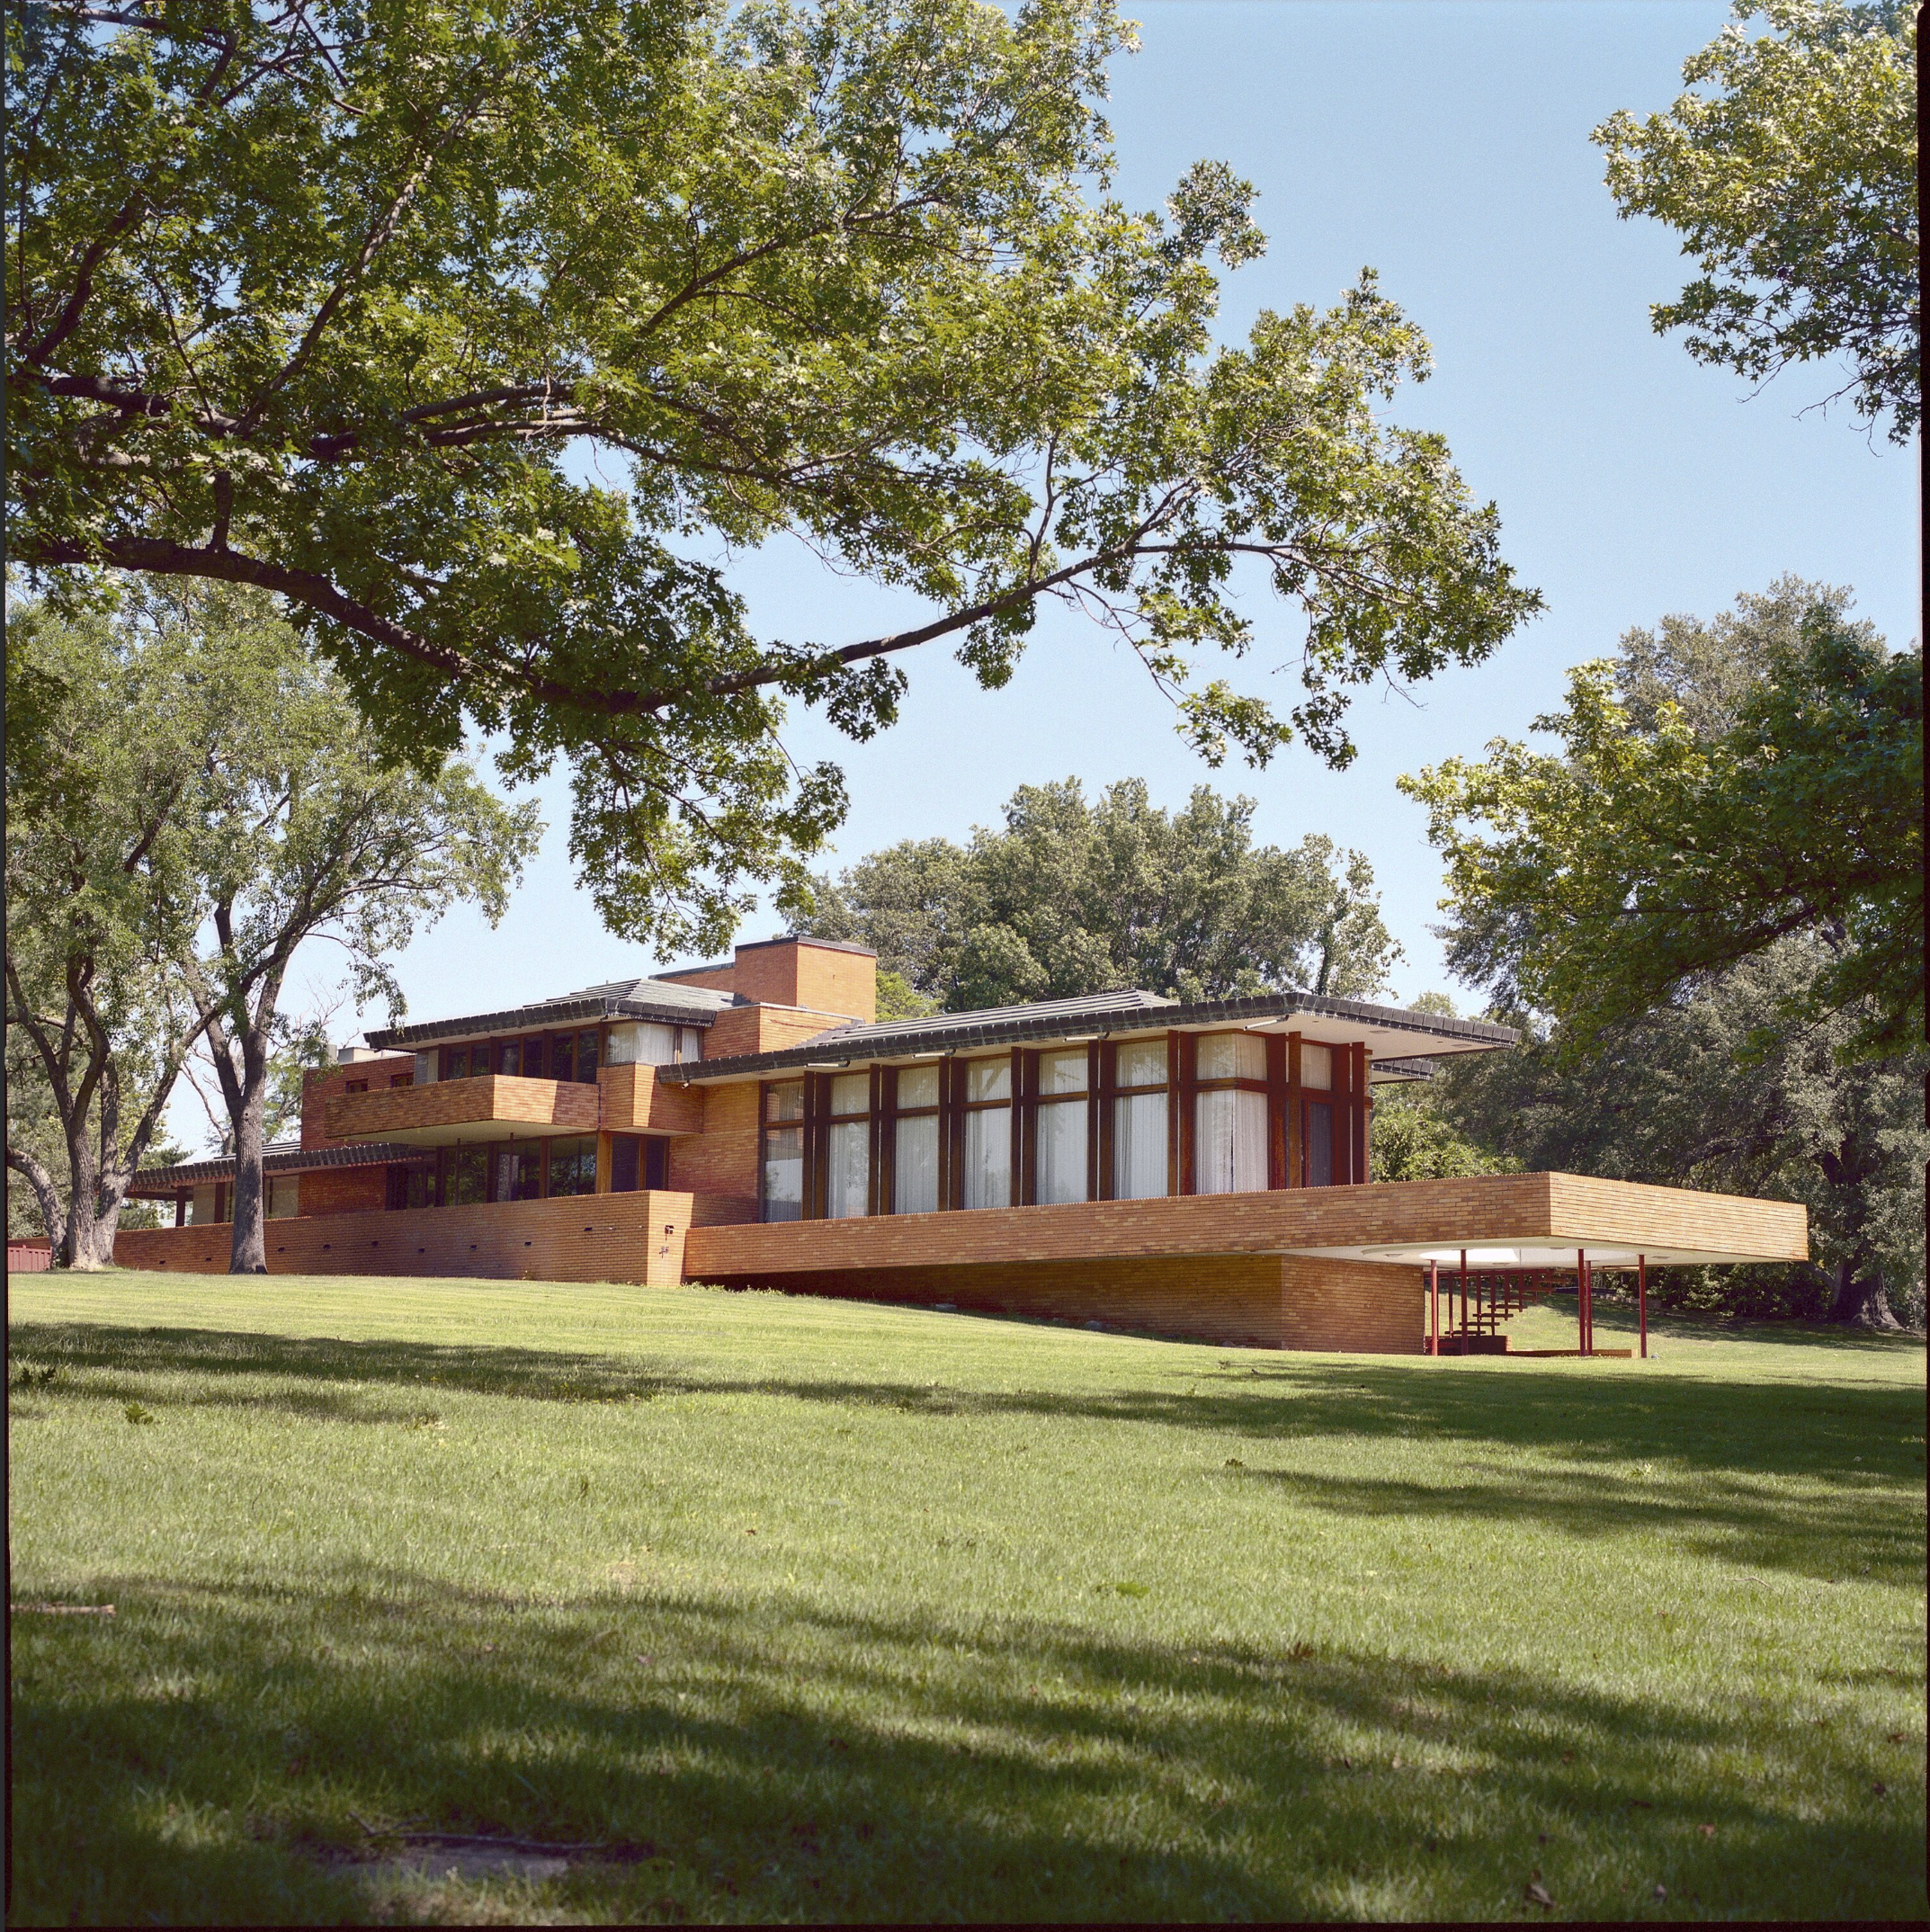 Price House, Bartlesville, Oklahoma, Frank Lloyd Wright architect, 2007